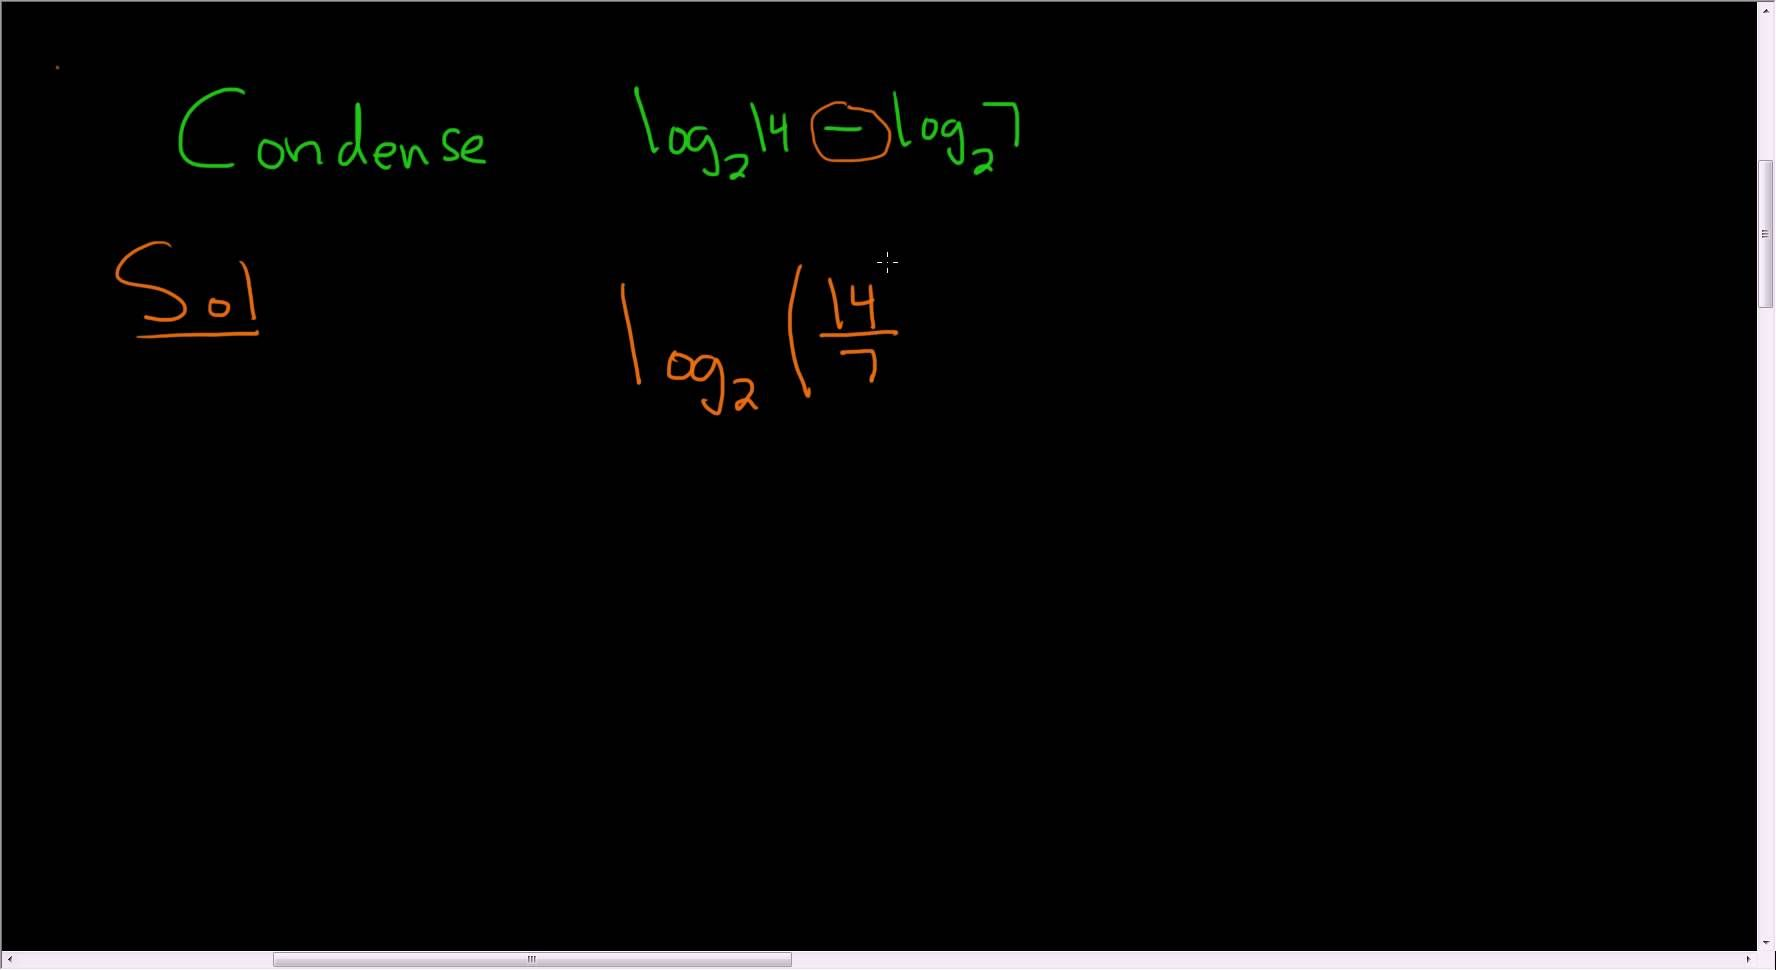 Condensing using the properties of logarithms example 2